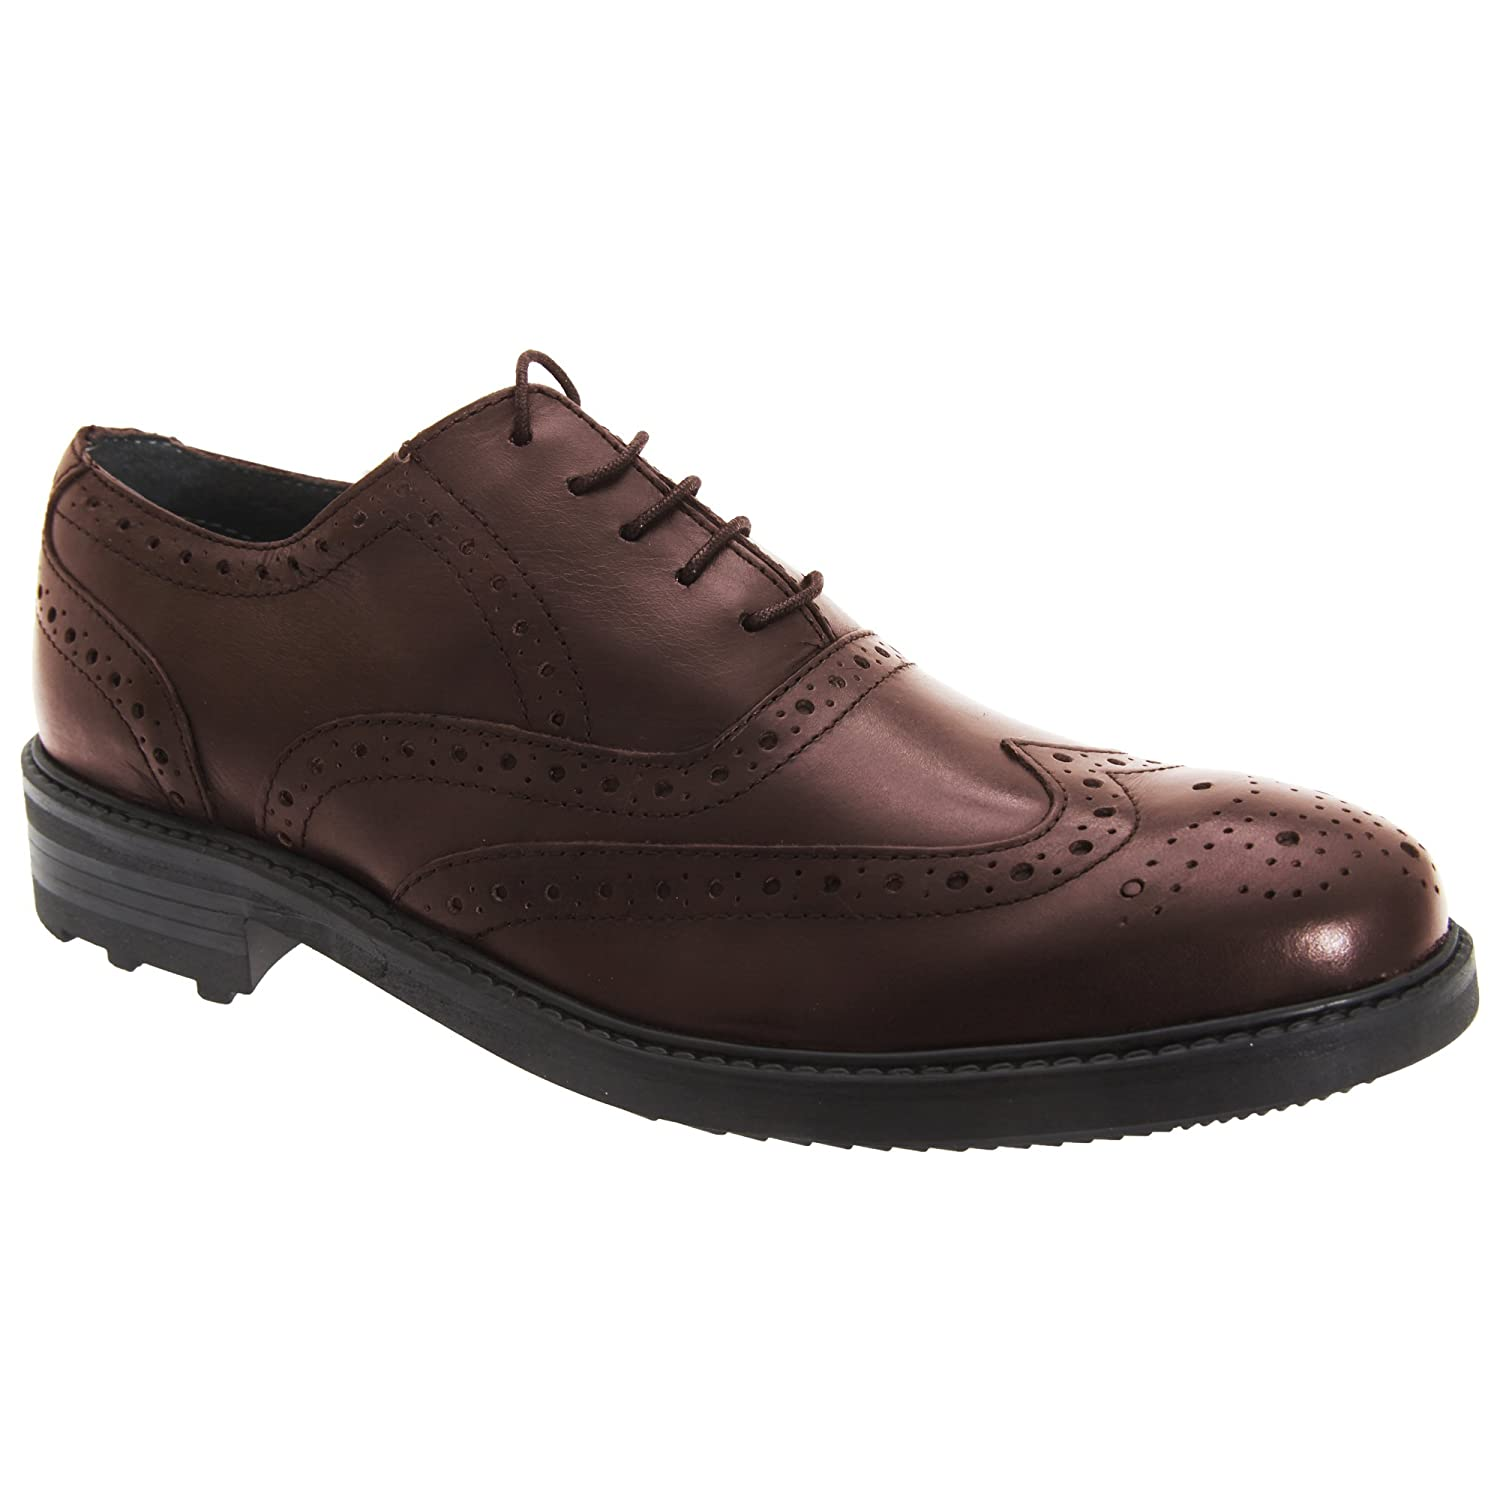 Roamer Mens 5 Eyelet Brogue Oxford Leather Shoes: Amazon.co.uk: Shoes & Bags